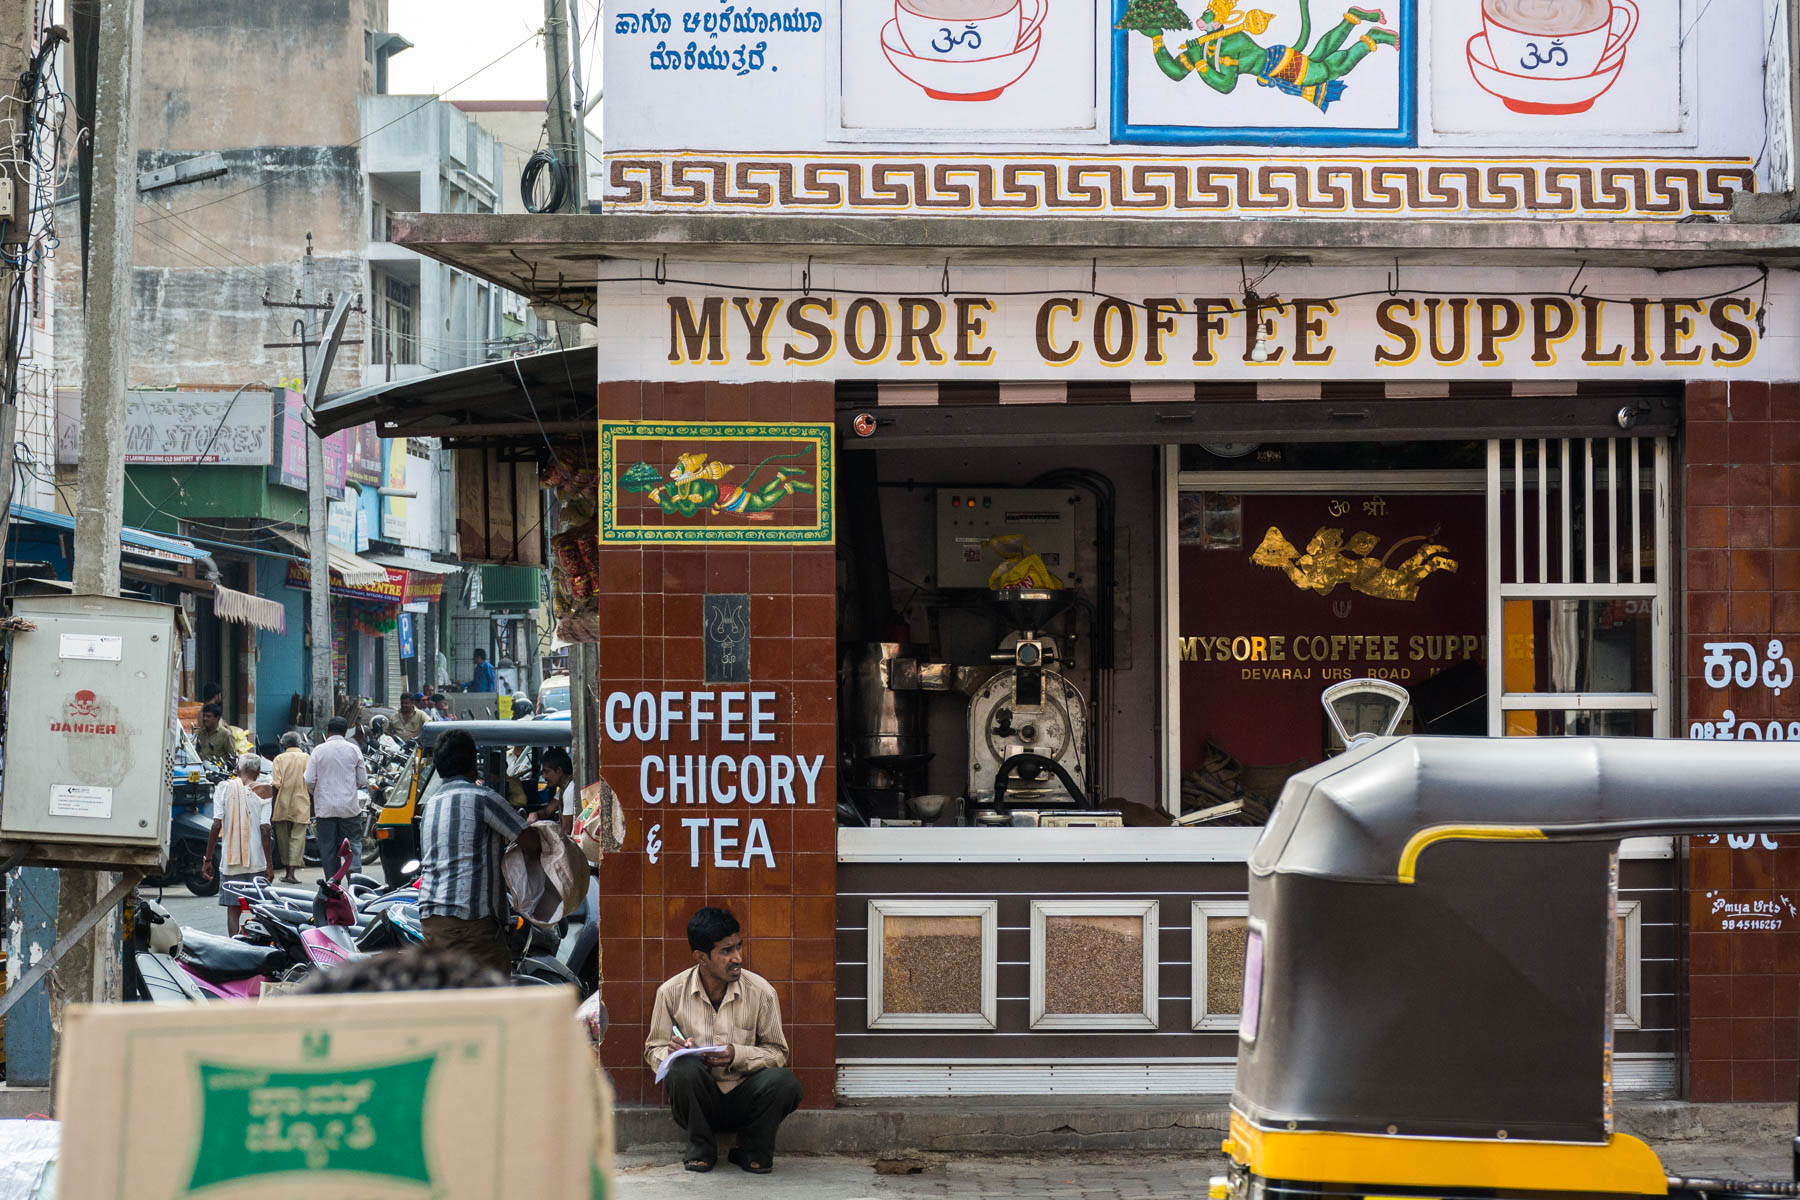 A coffee supply store in Mysore, India - Lost With Purpose